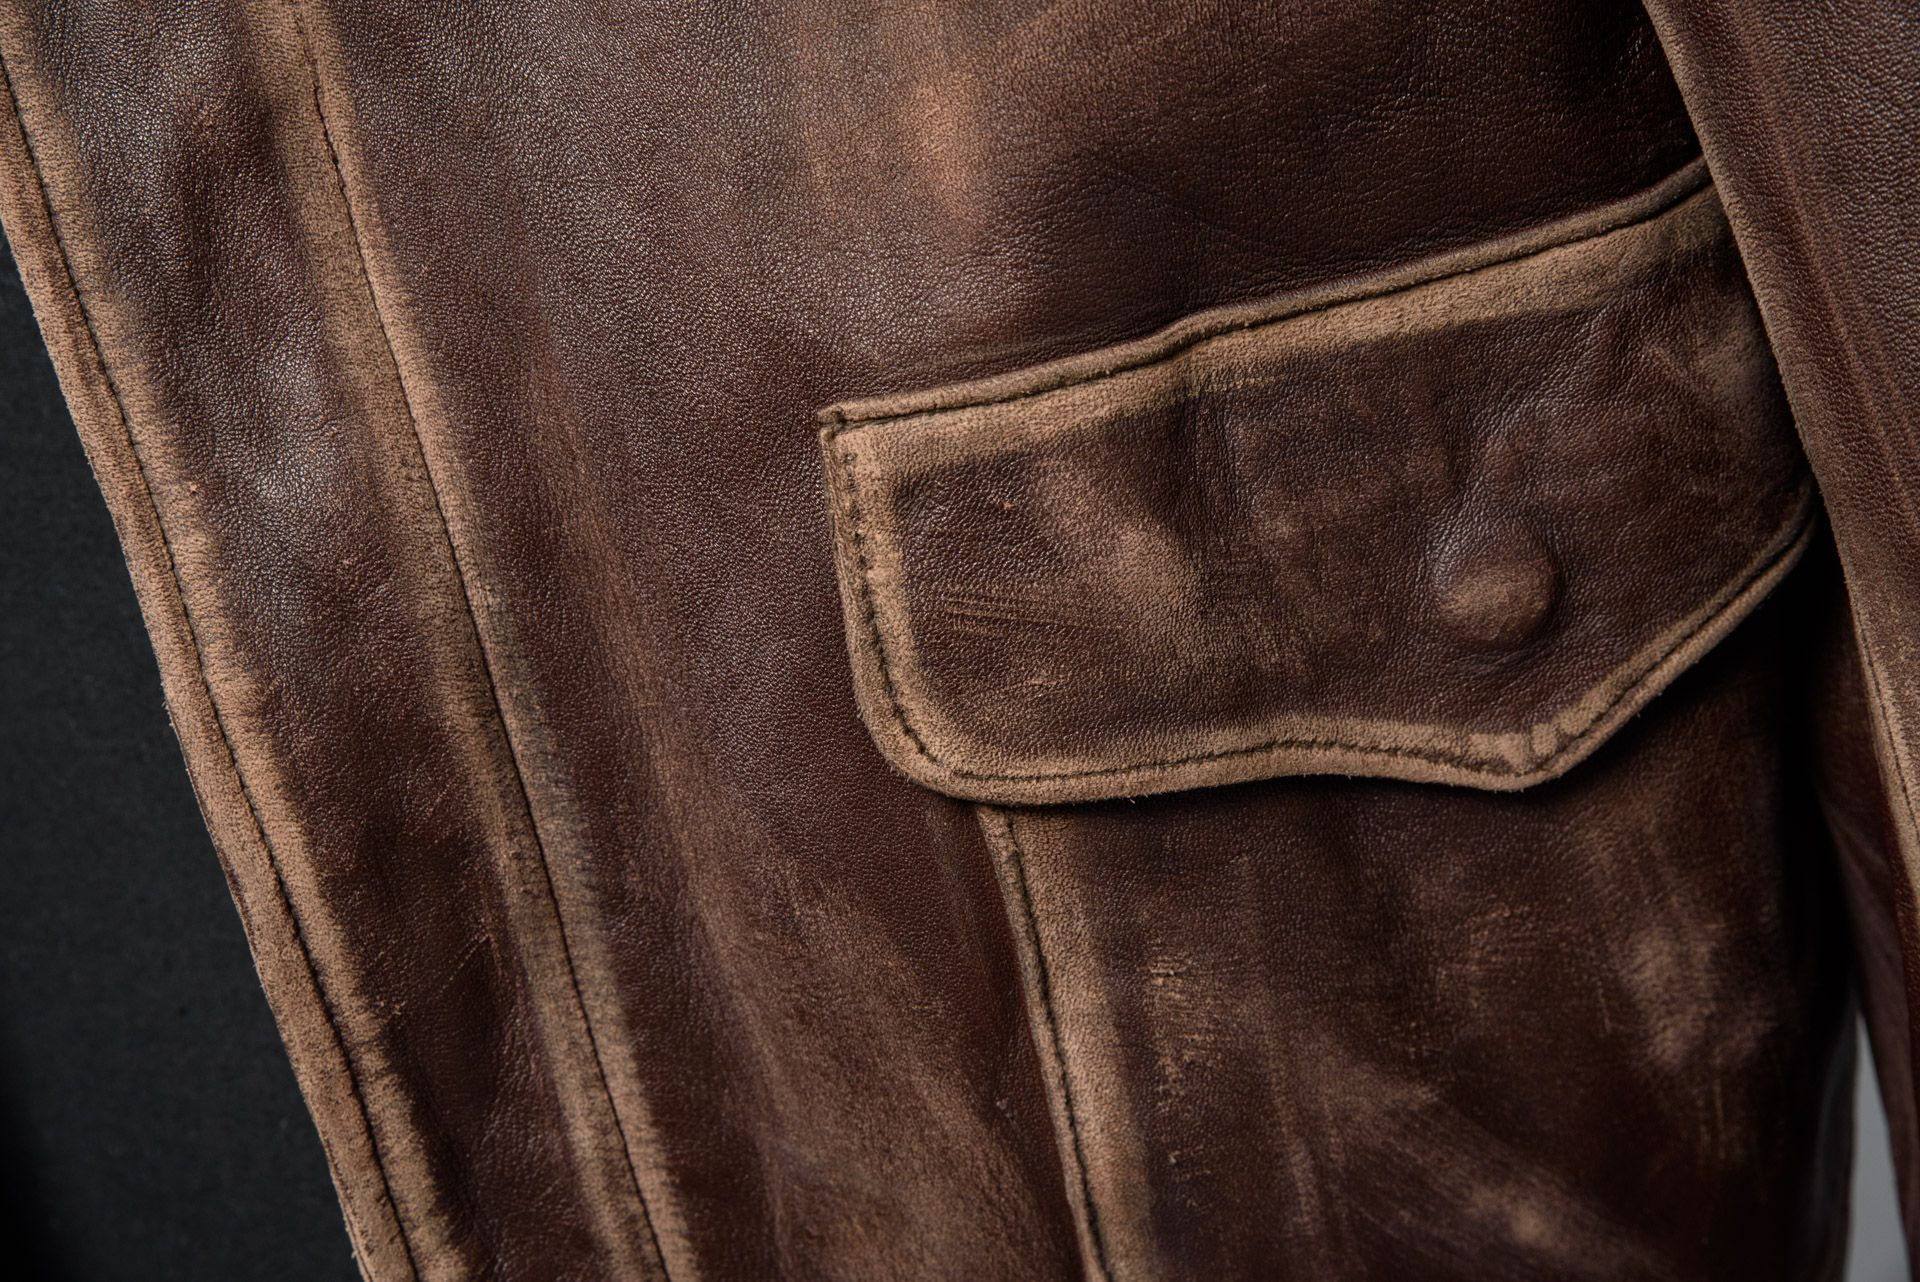 Leather Jacket Worn By Harrison Ford As Indiana Jones In Indiana Jones And The Last Crusade 1989 From The Paul G Allen Science Fiction Indiana Jones Fiction [ 1282 x 1920 Pixel ]